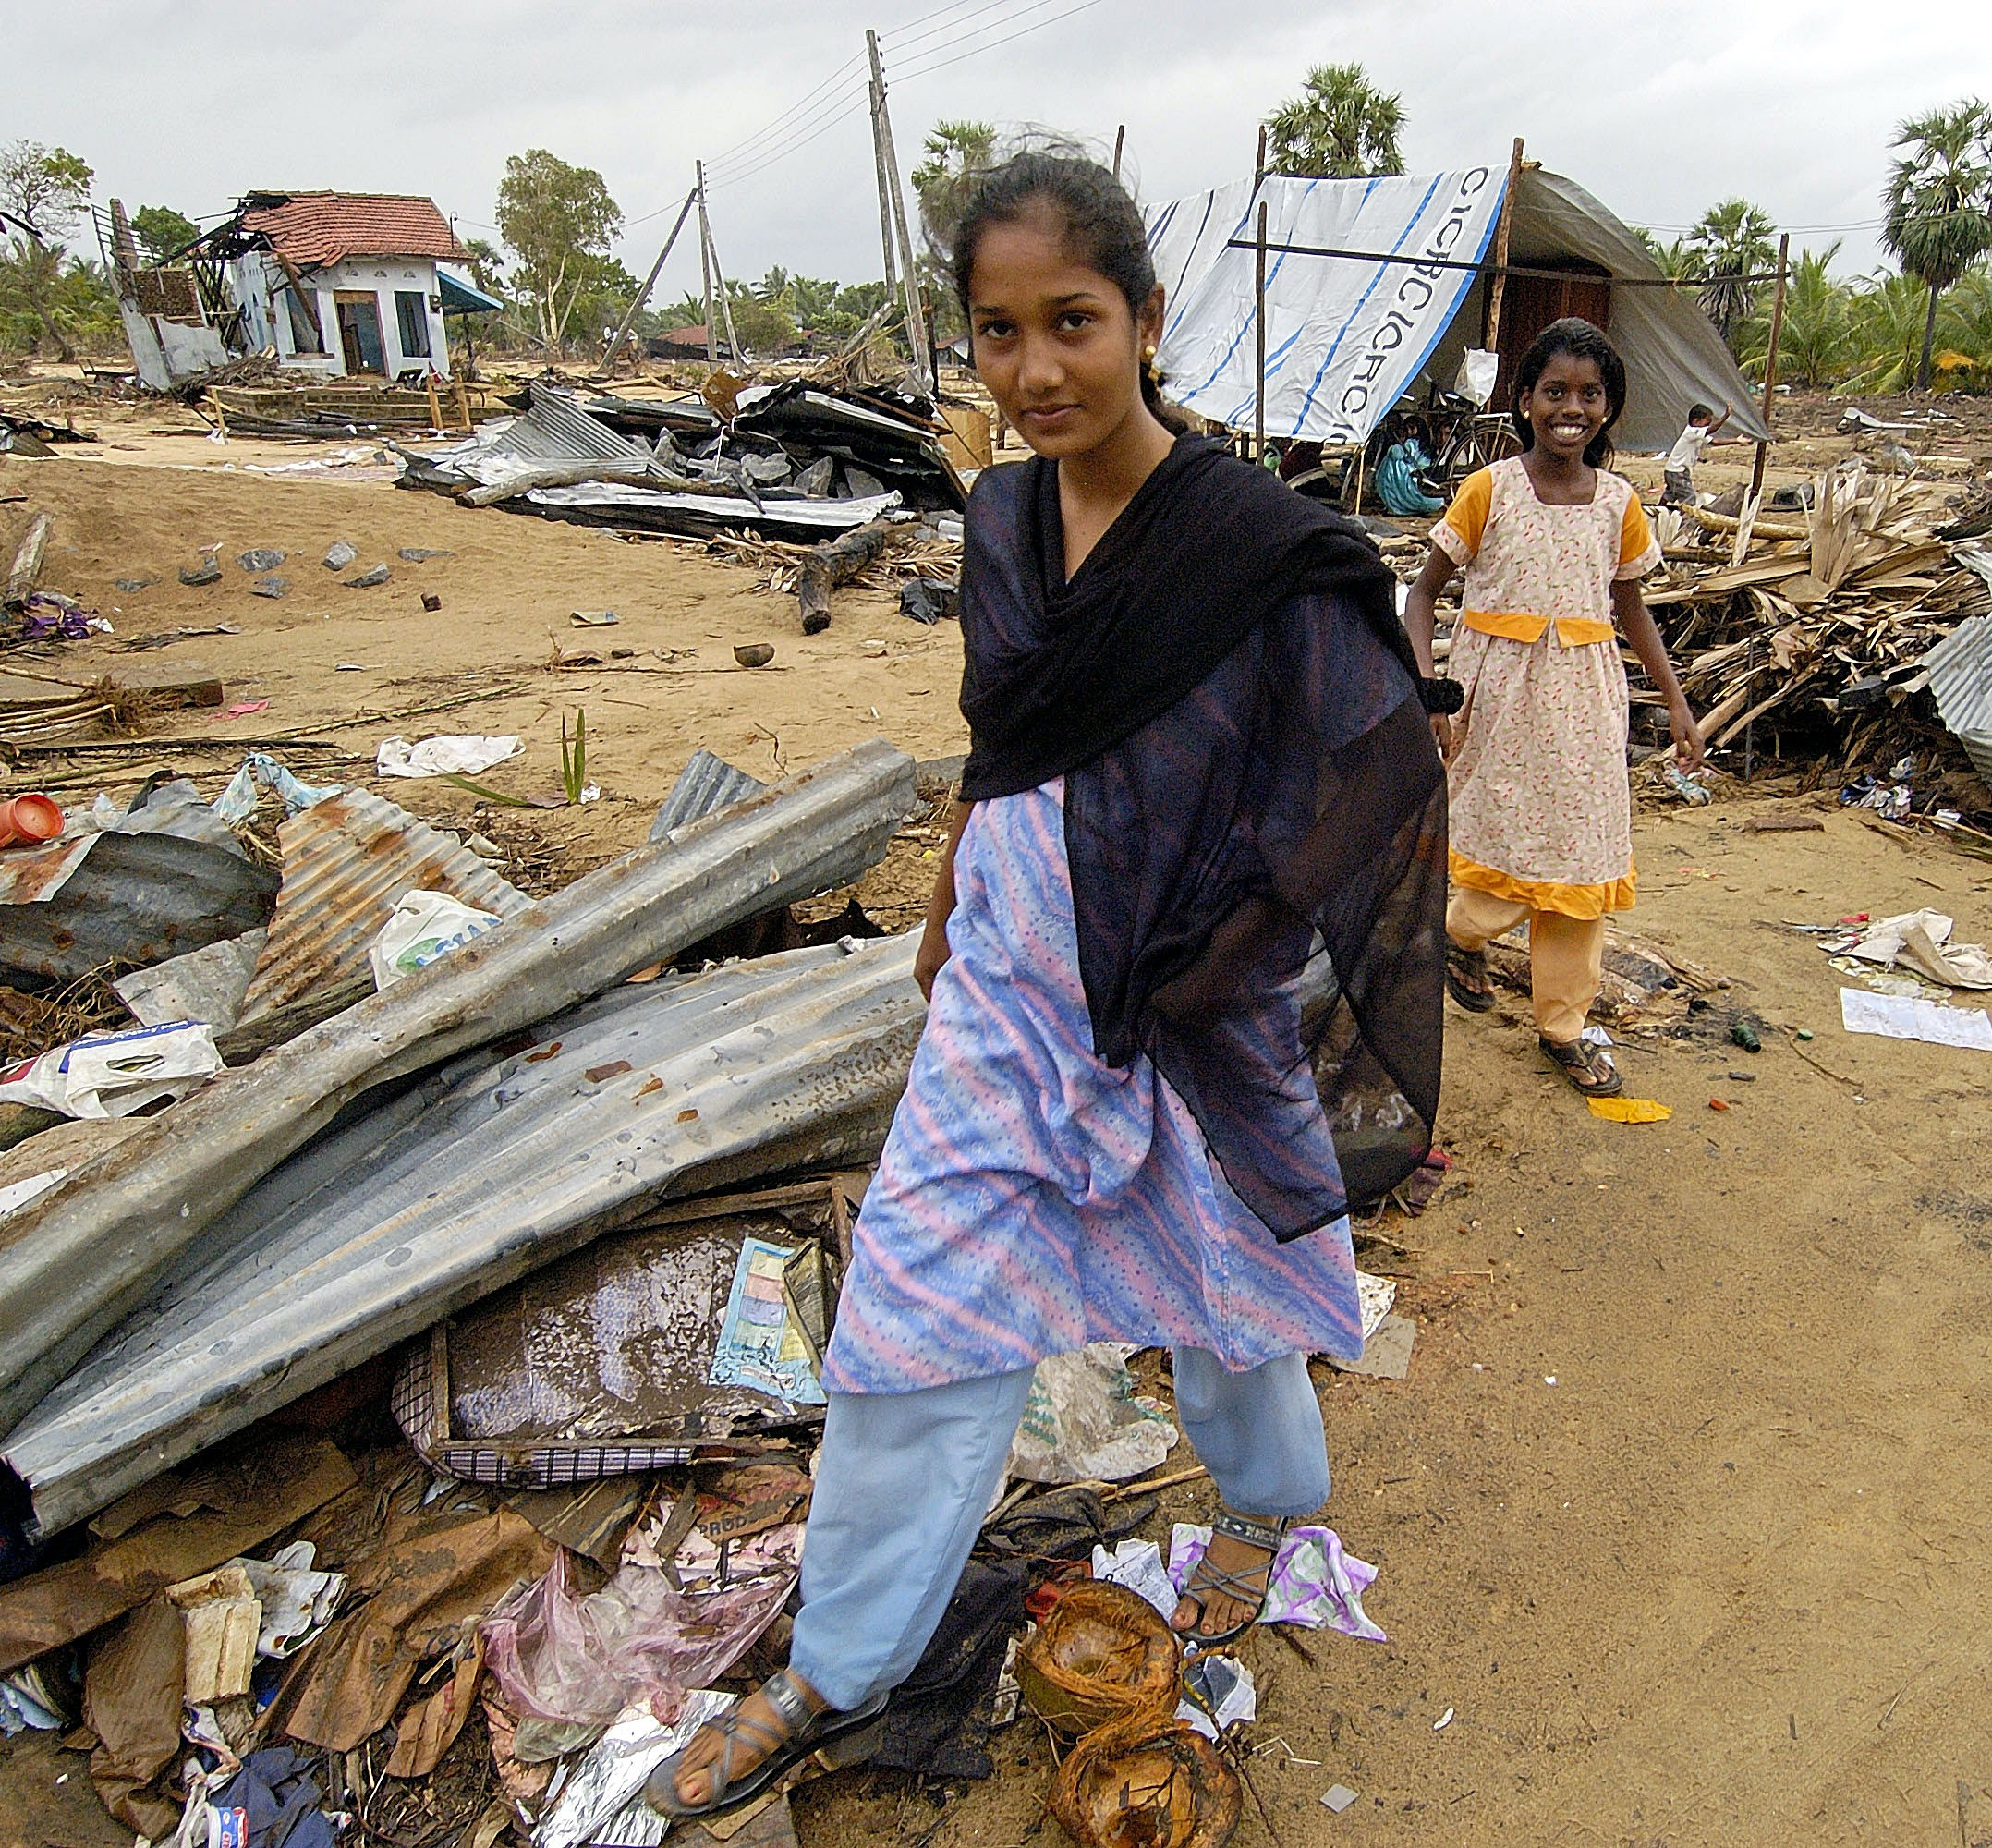 A tsunami survivor walks in Batticaloa, Sri Lanka. Photo by Paul Jeffrey, ACT International.